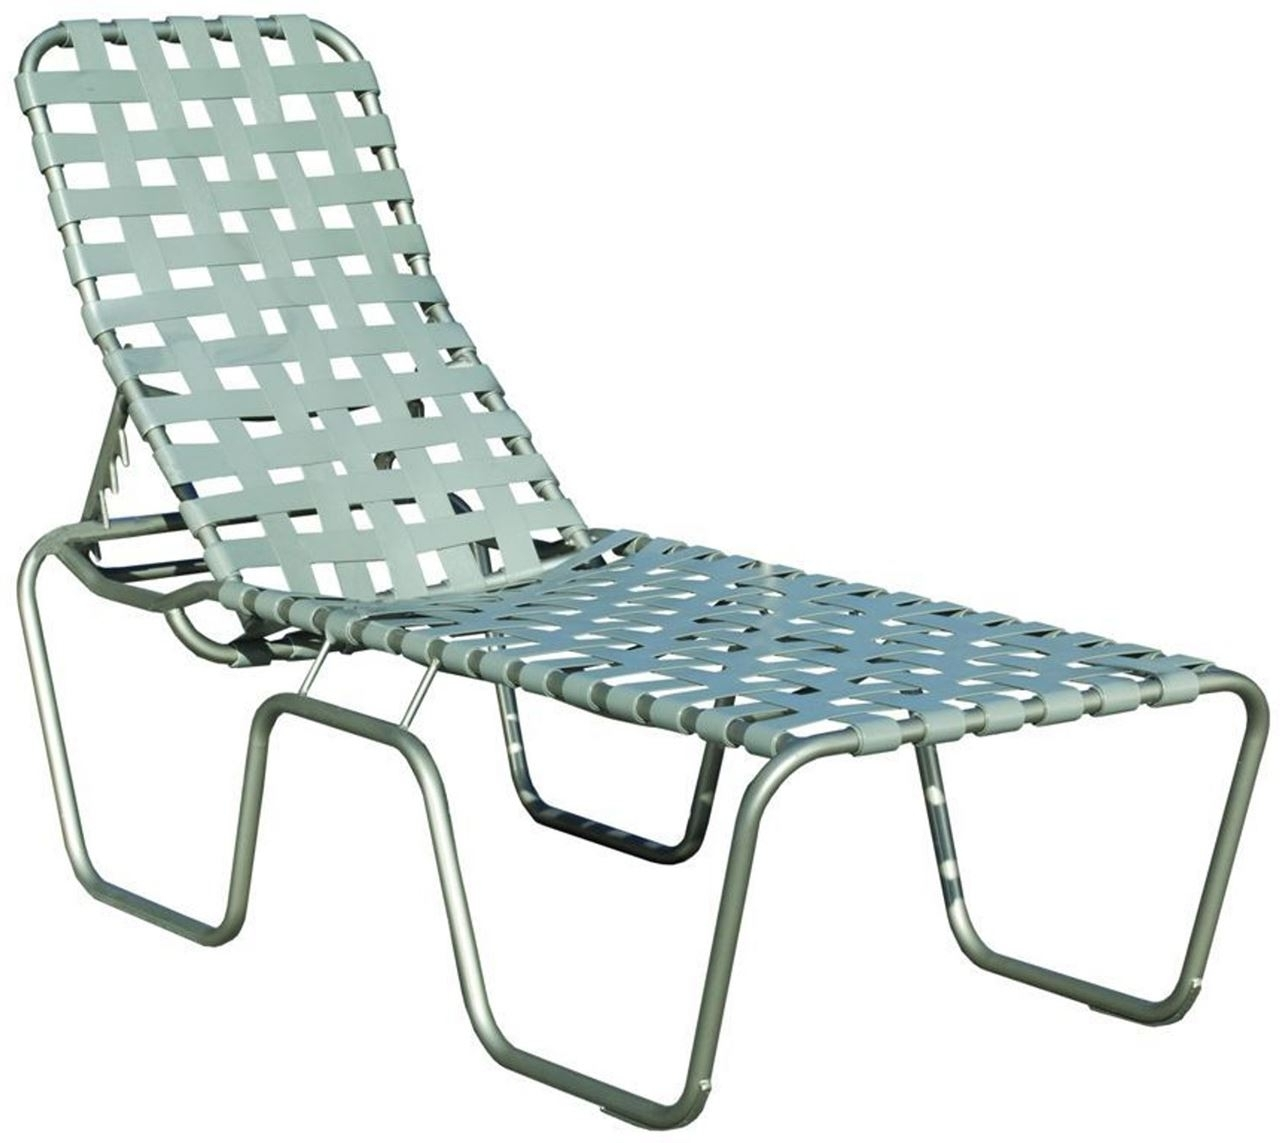 Commercial Basketweave Strap High Seat Chaise Lounge Sanibel With Regard To 2018 Chaise Lounge Strap Chairs (View 5 of 15)